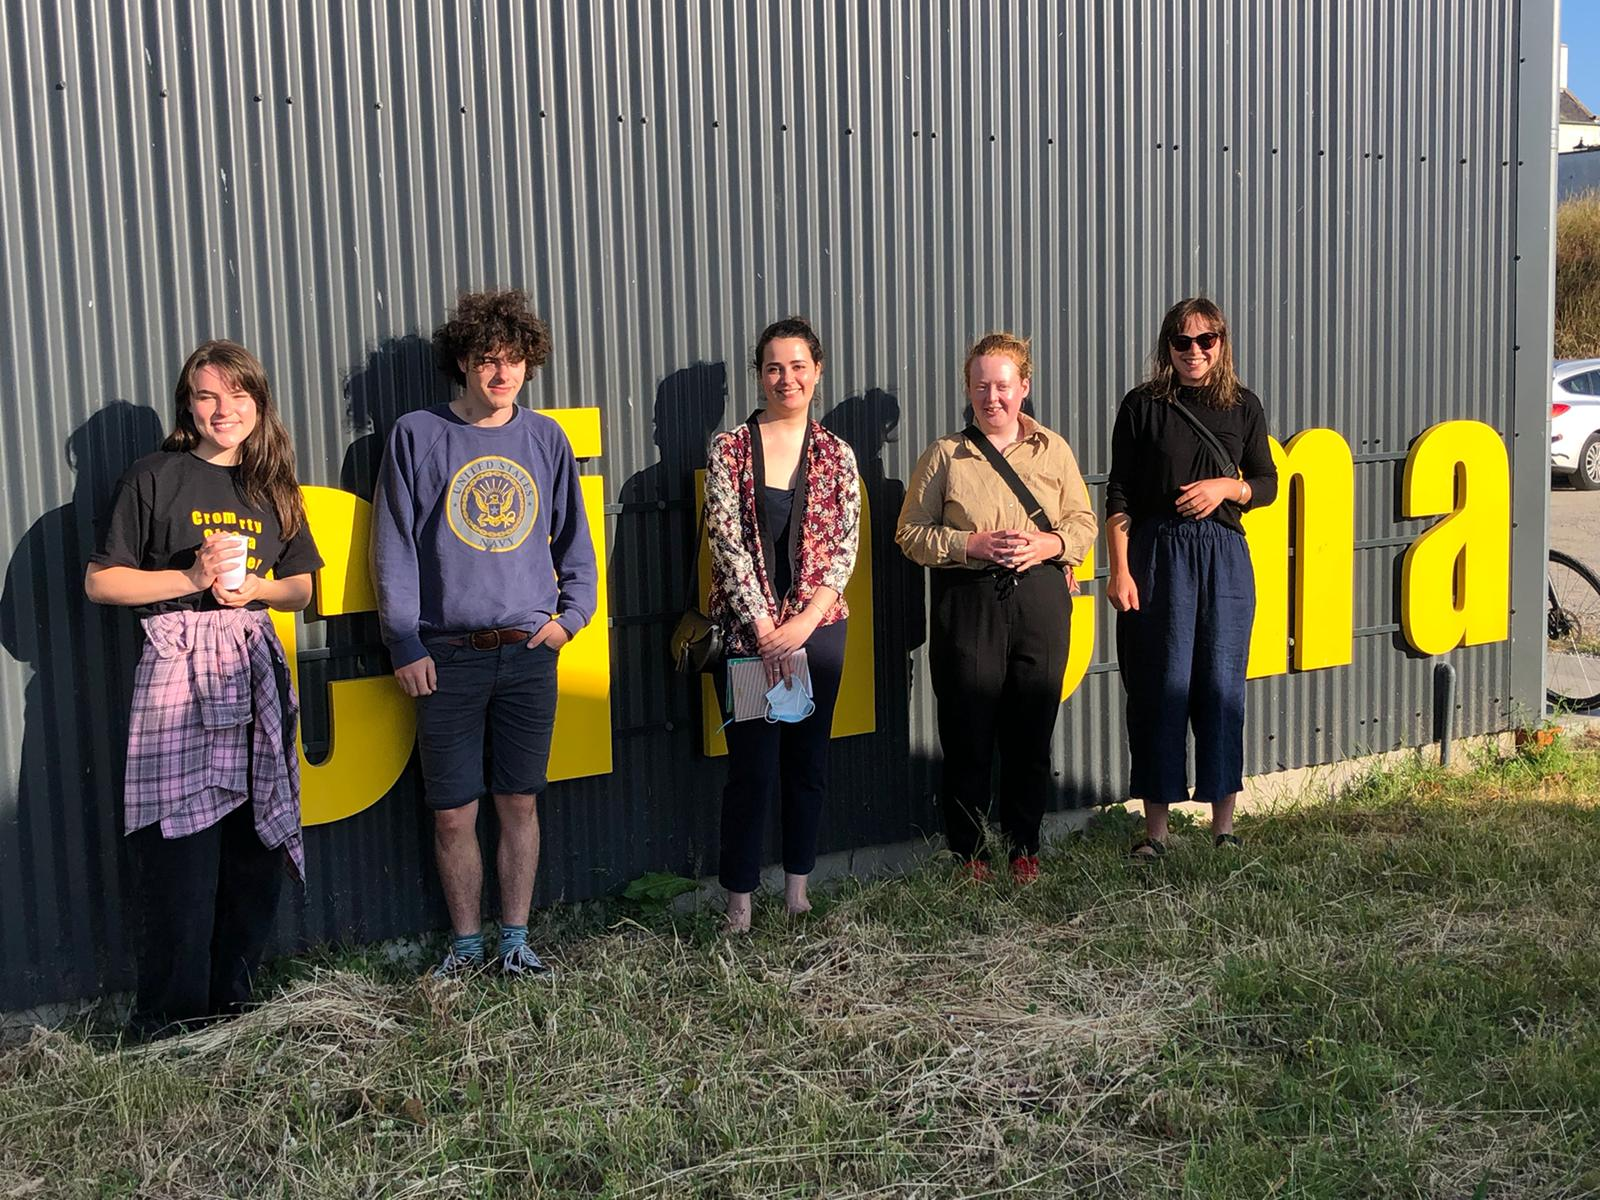 The Cromarty young programmers group stand in front of a building, with cinema written on the side in big yellow letters.